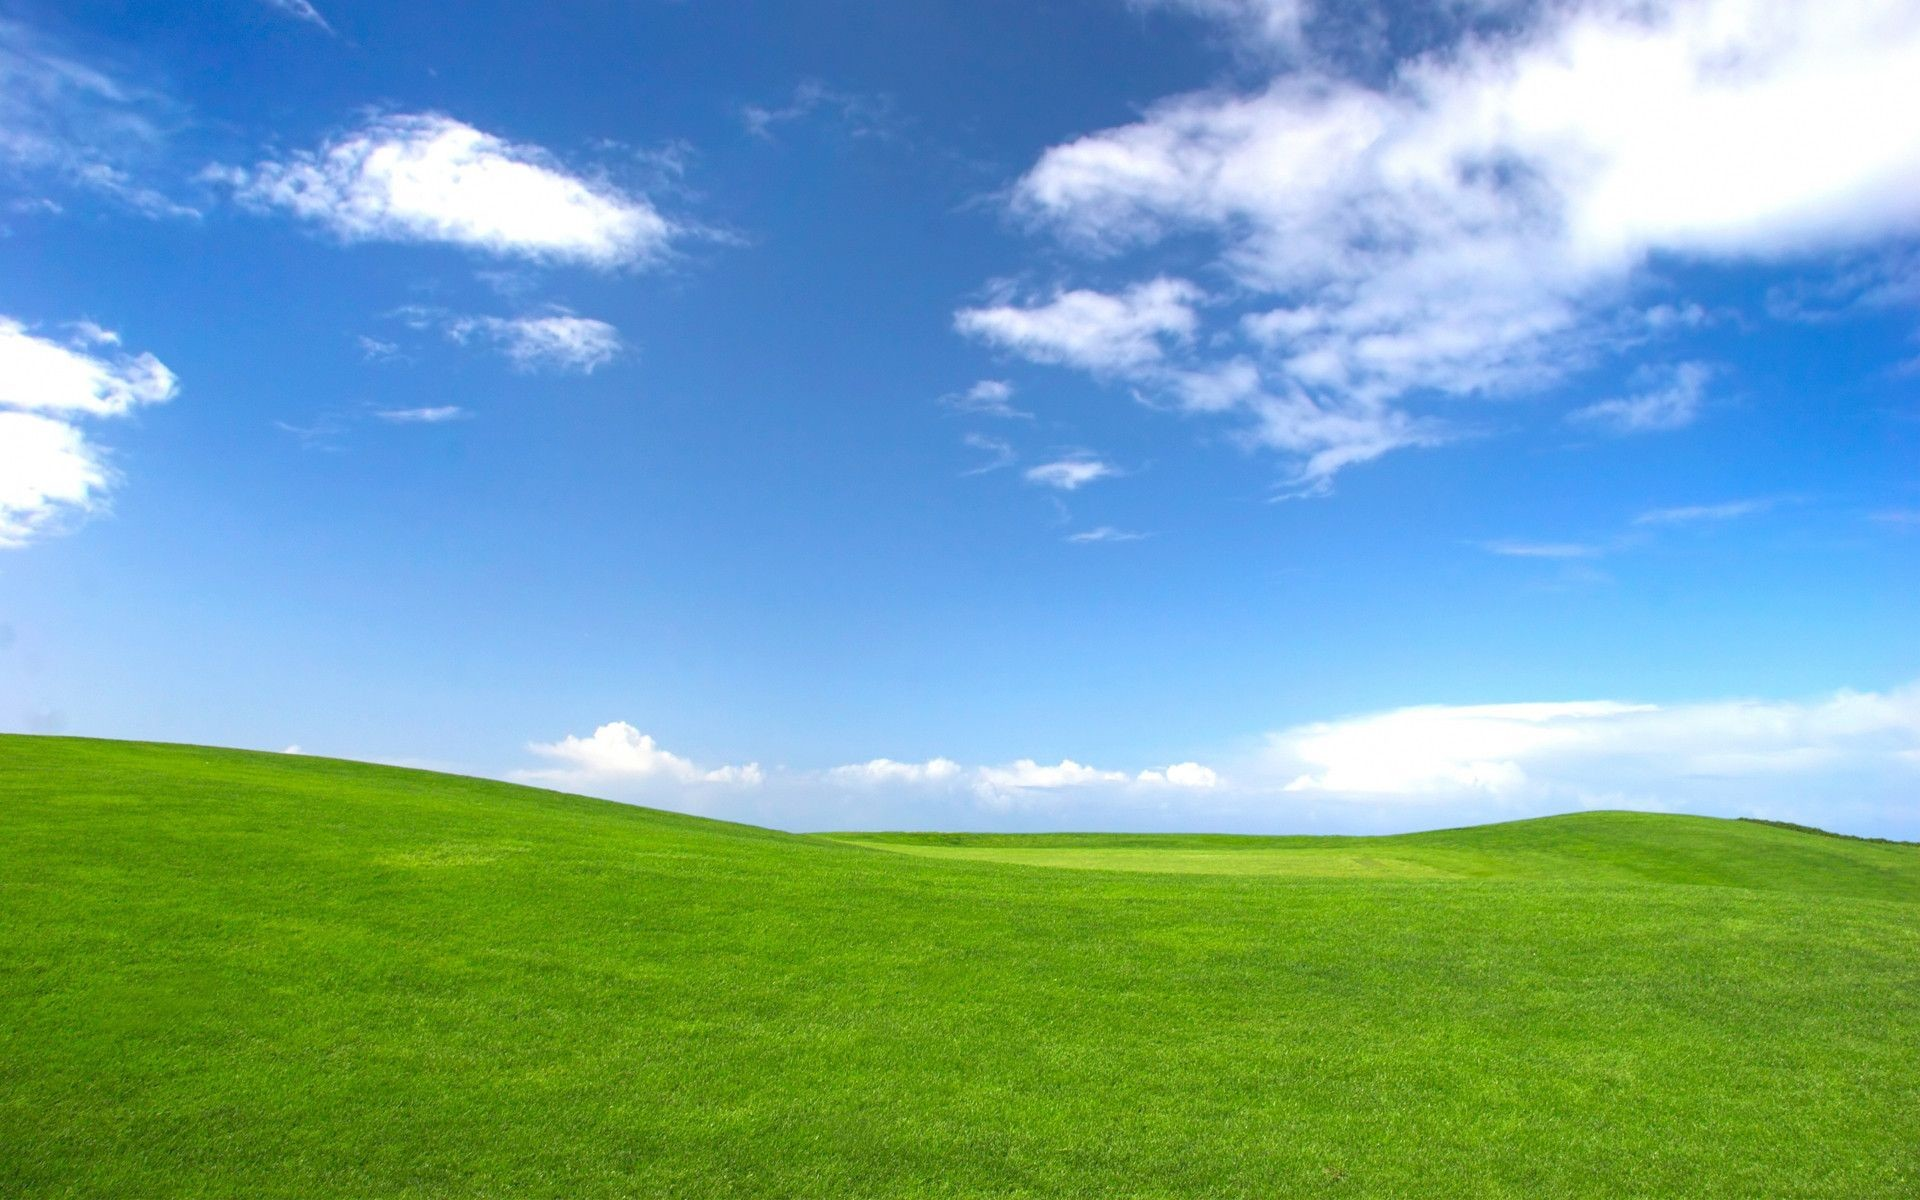 Windows Xp Wallpaper Bliss 54 Images